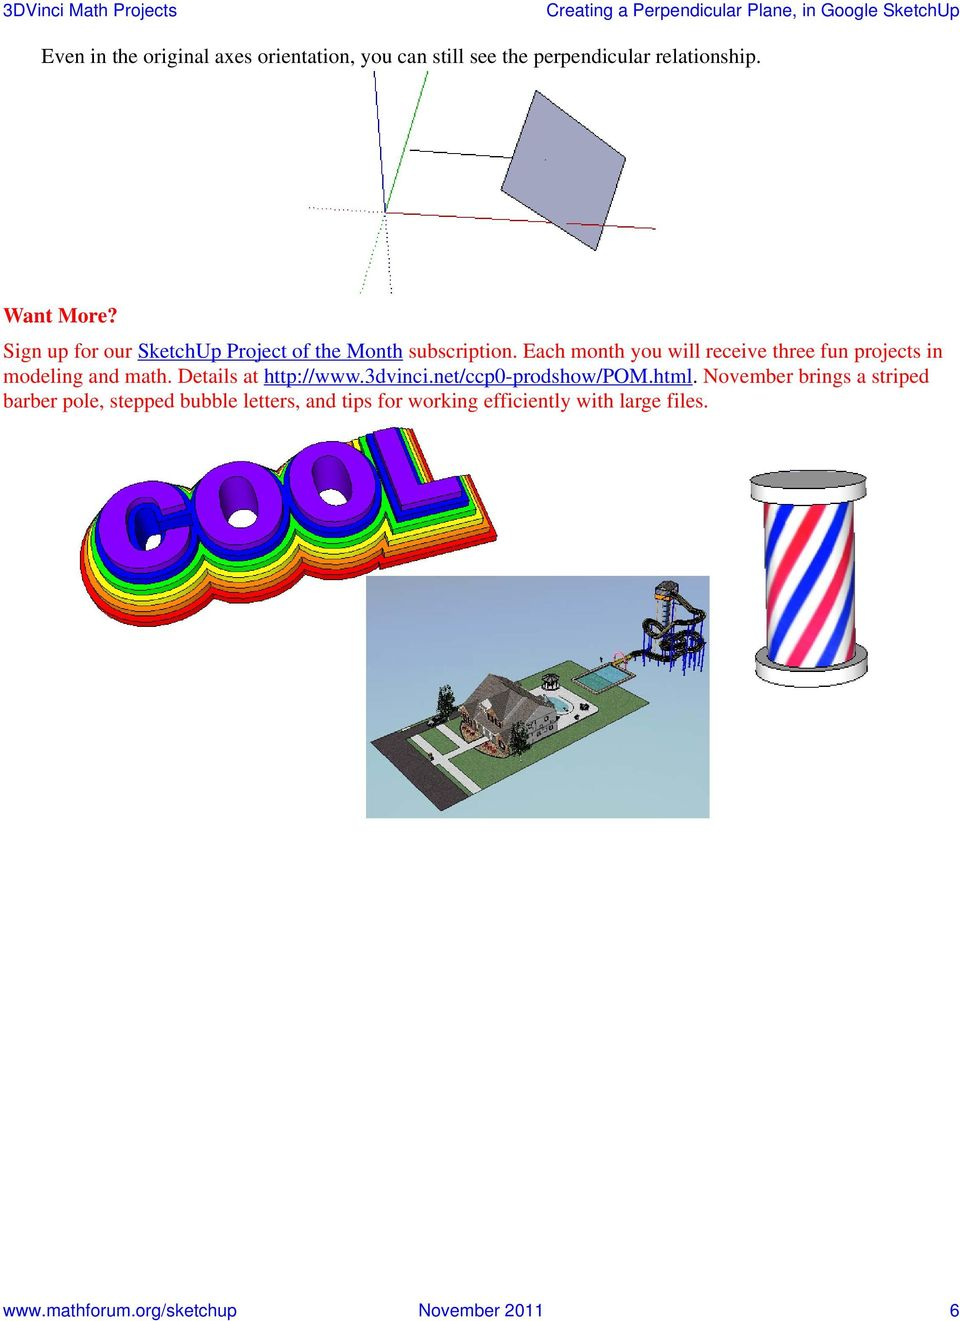 Creating a Perpendicular Plane, in Google SketchUp - PDF